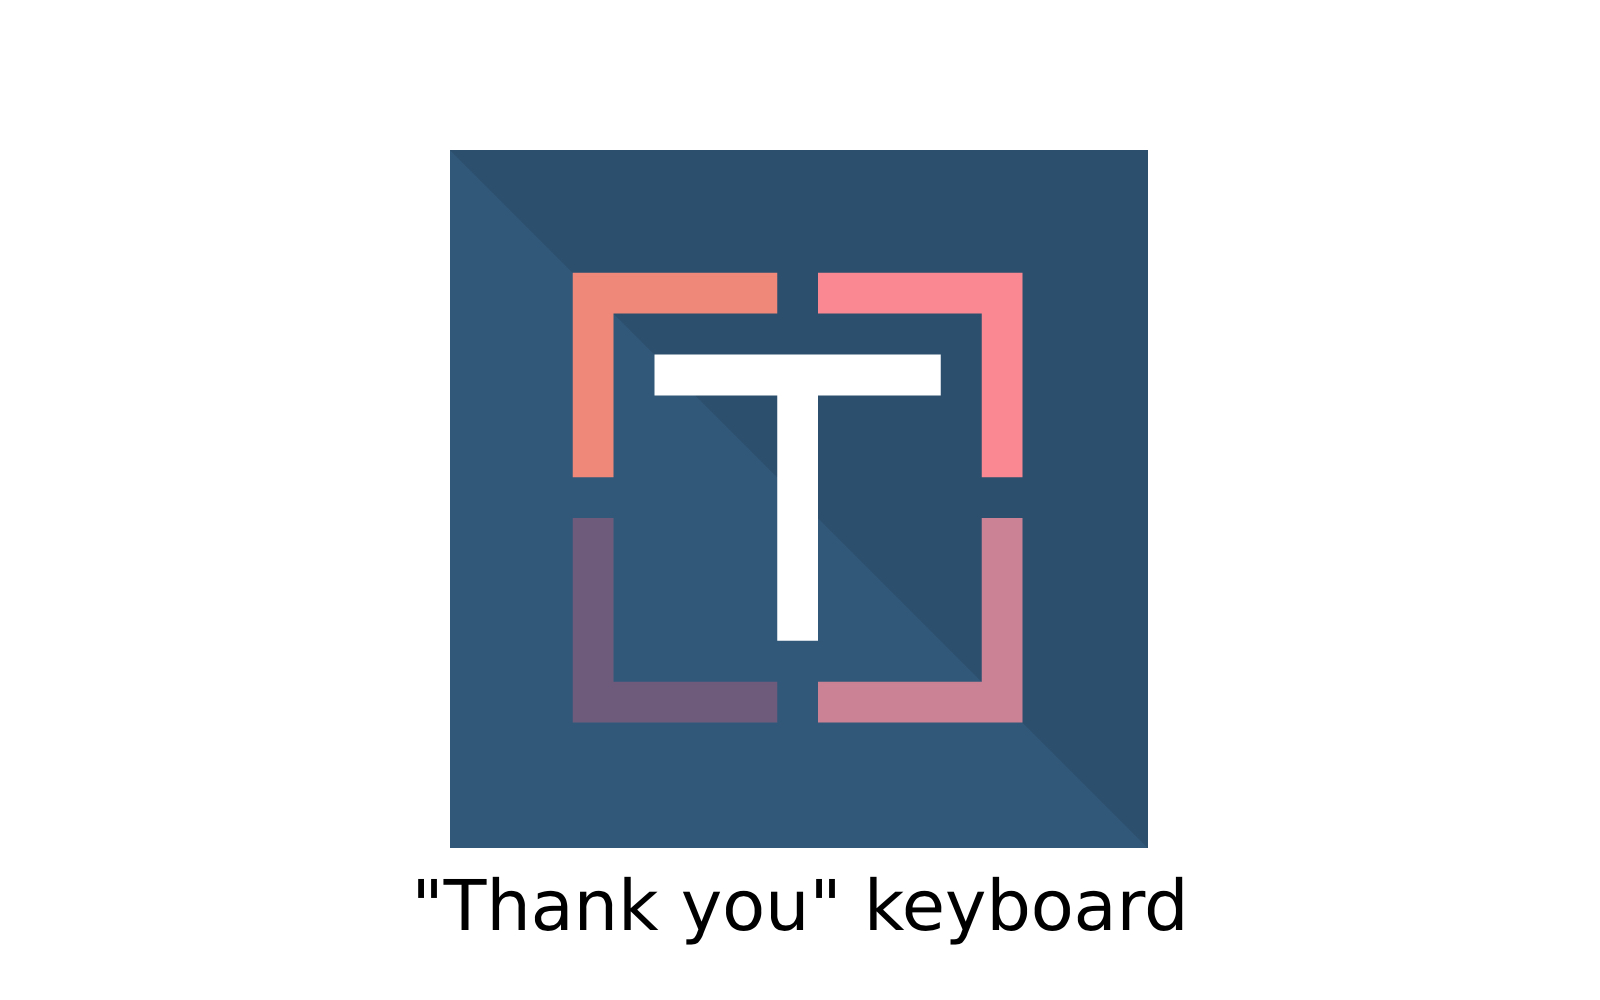 Thank you keyboard